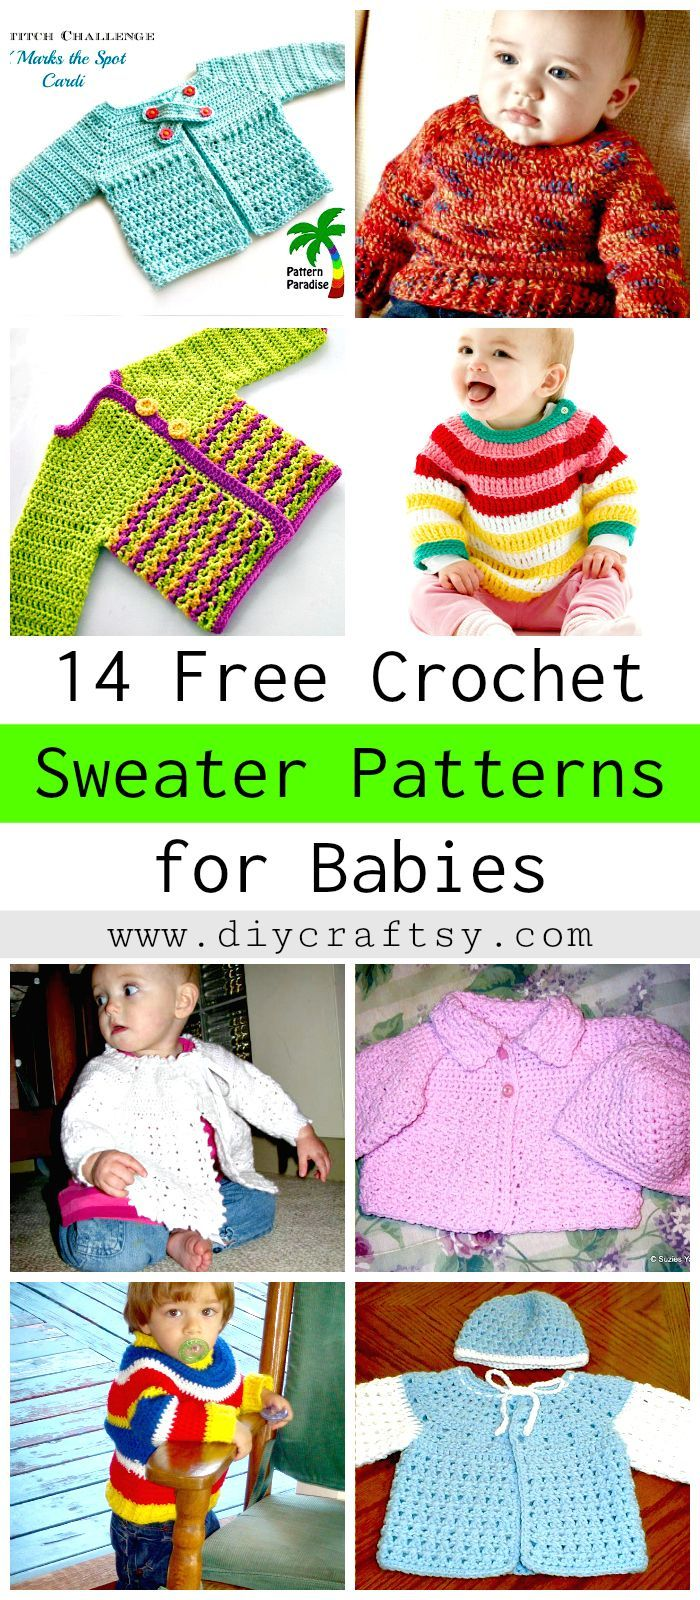 f440f843a 14 Free Crochet Sweater Patterns for Babies - DIY   Crafts